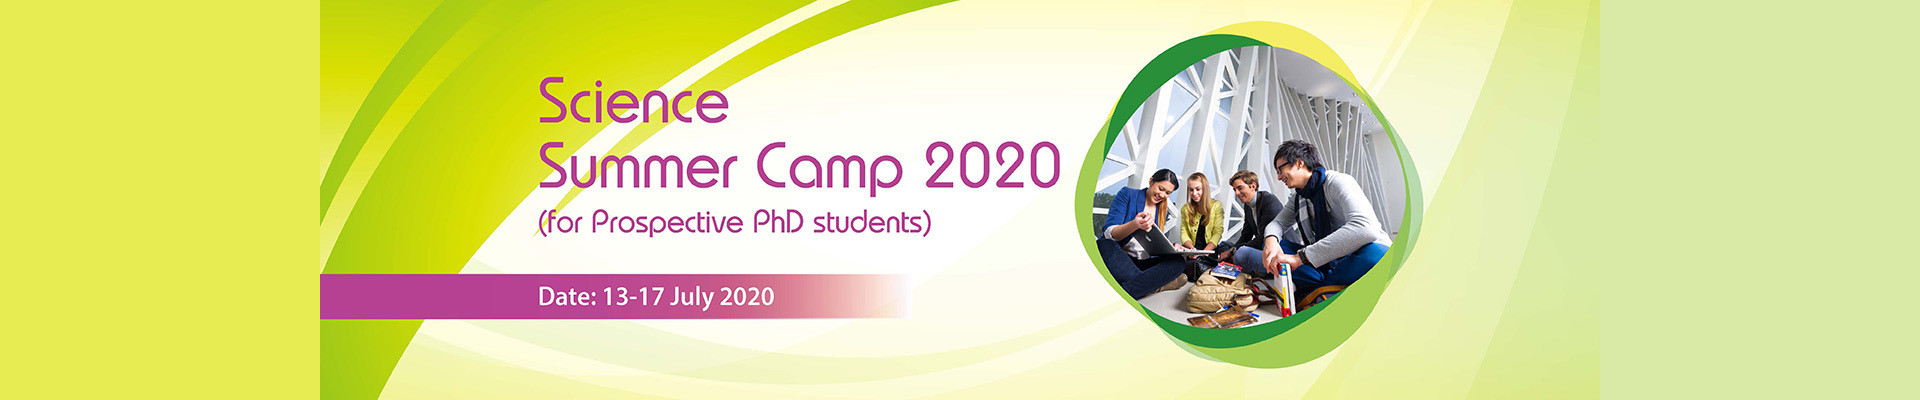 Science Summer Camp 2020